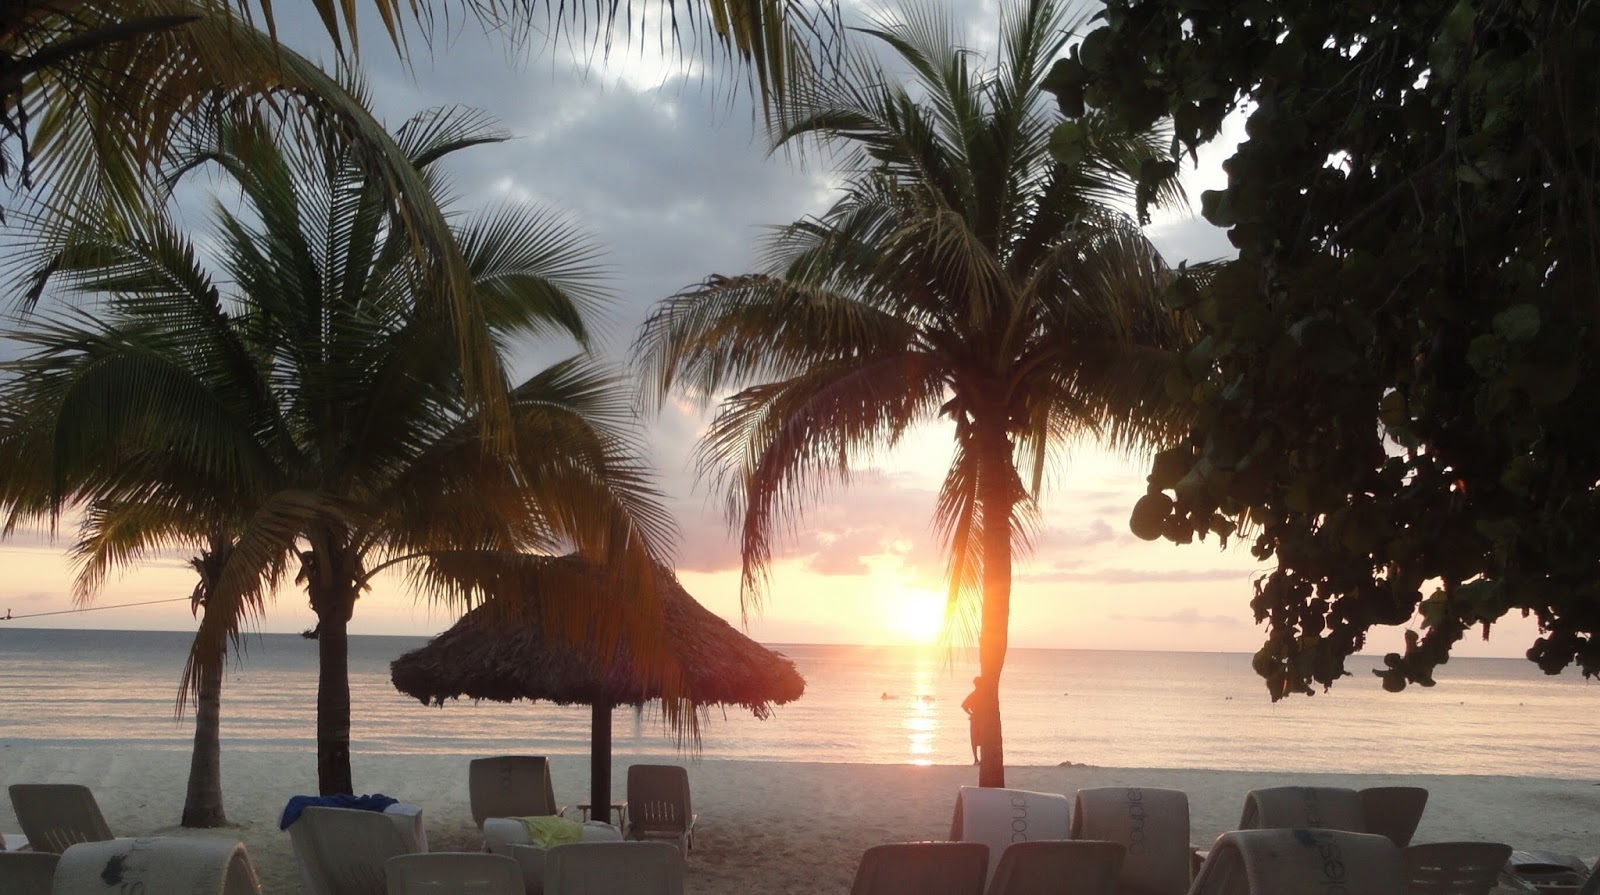 http://mommy-dreaming.blogspot.com/2014/05/swept-away-negril-jamaica-review.html